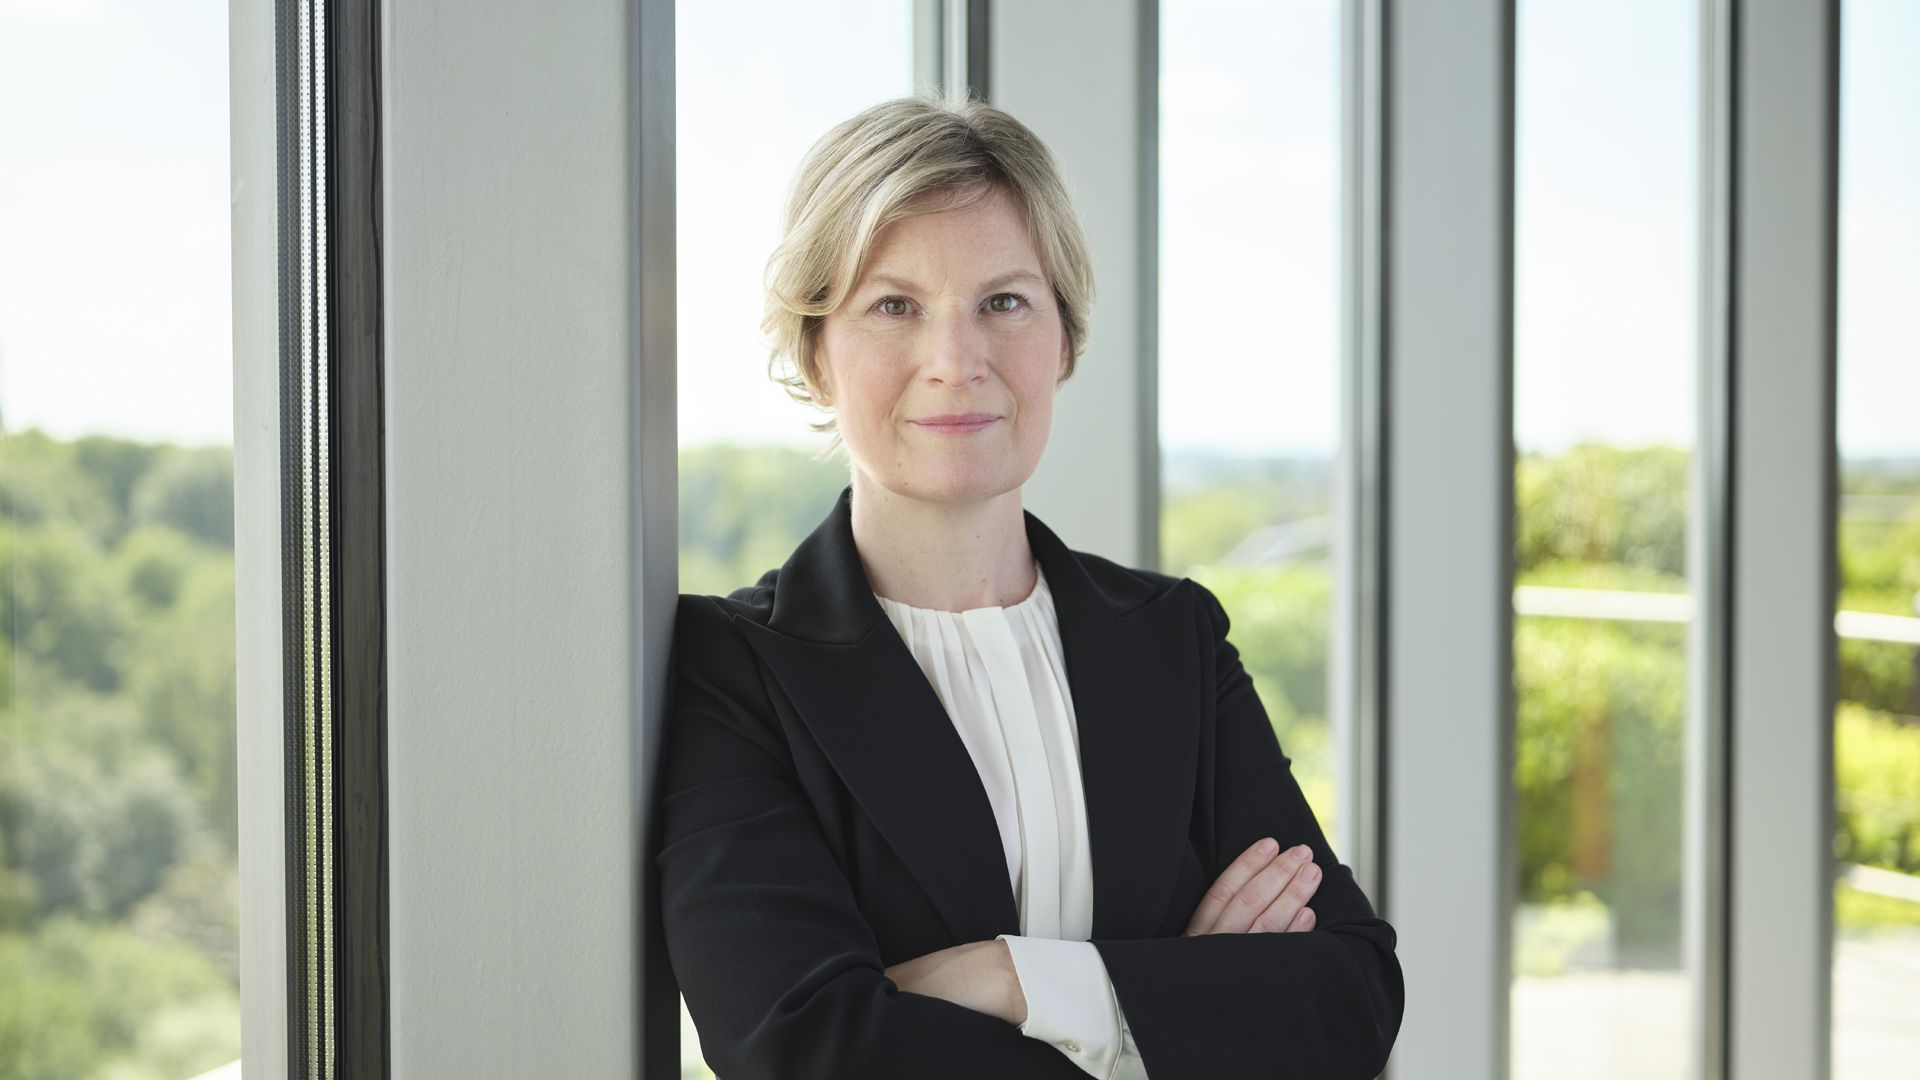 Wintershall Dea Vorstandsmitglied COO Dawn Summers